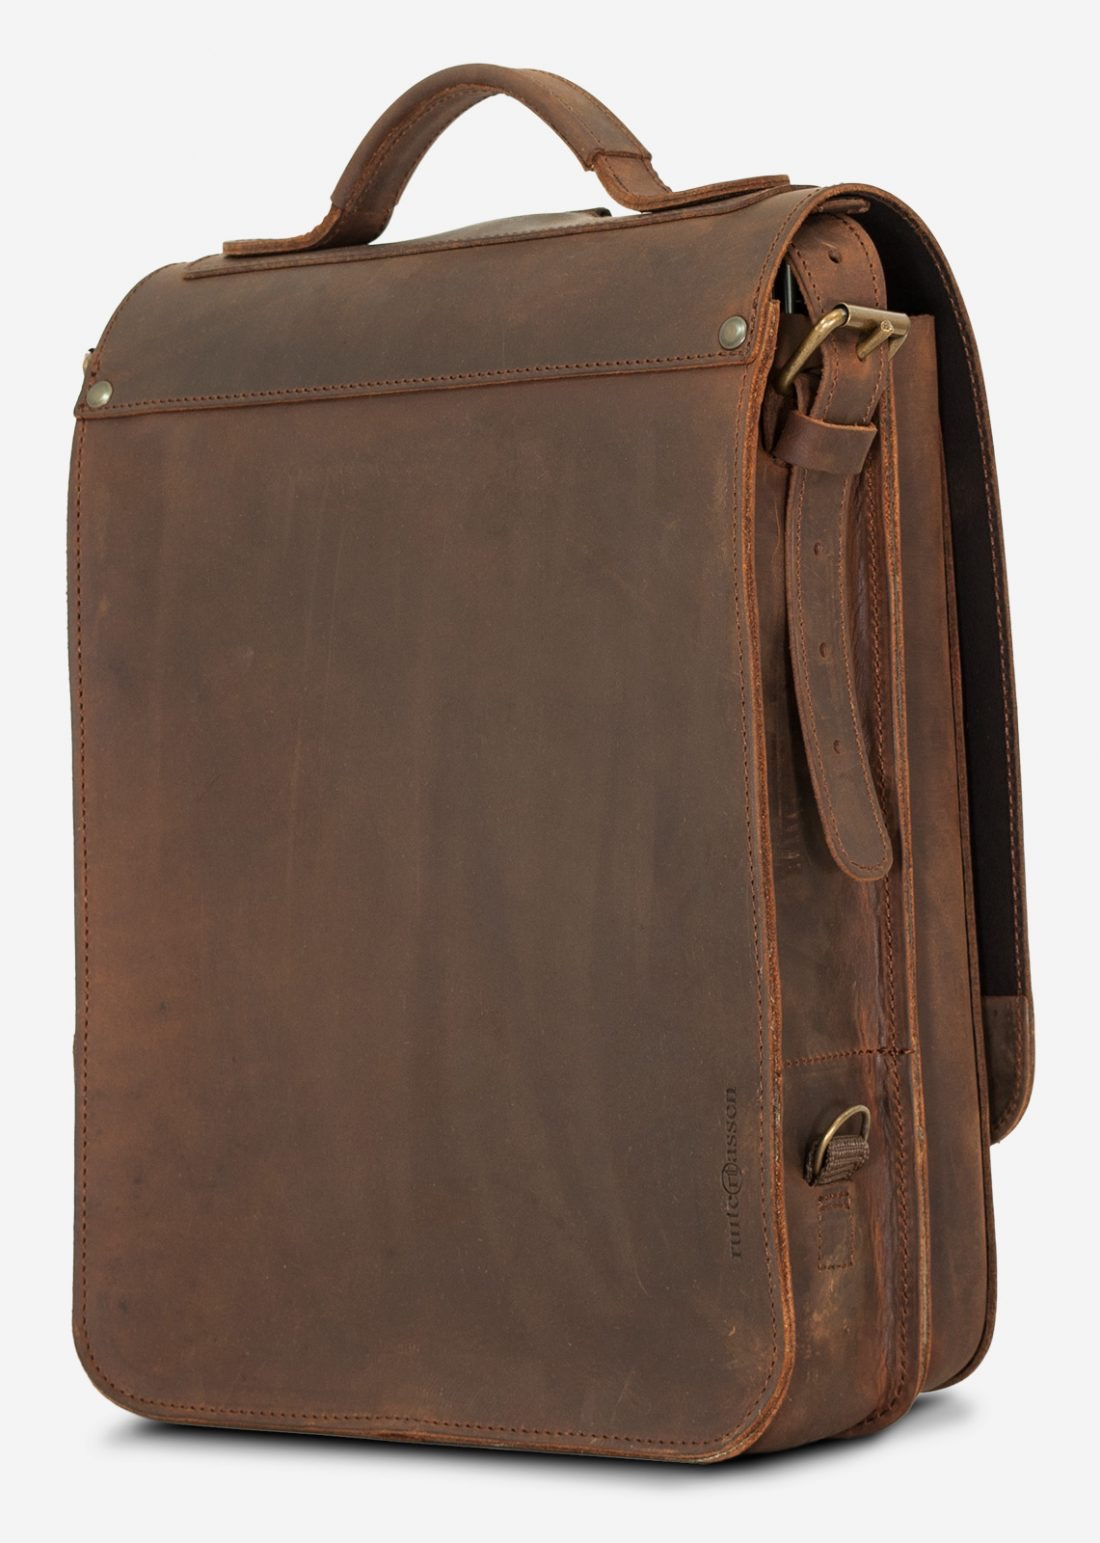 Back view of the vegetable-tanned brown leather backpack with shoulder belt.